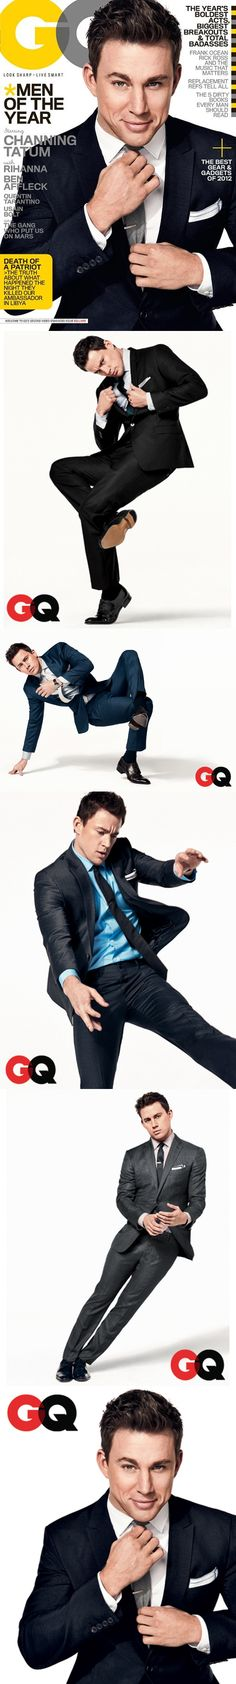 Channing Tatum for the December American edition of GQ